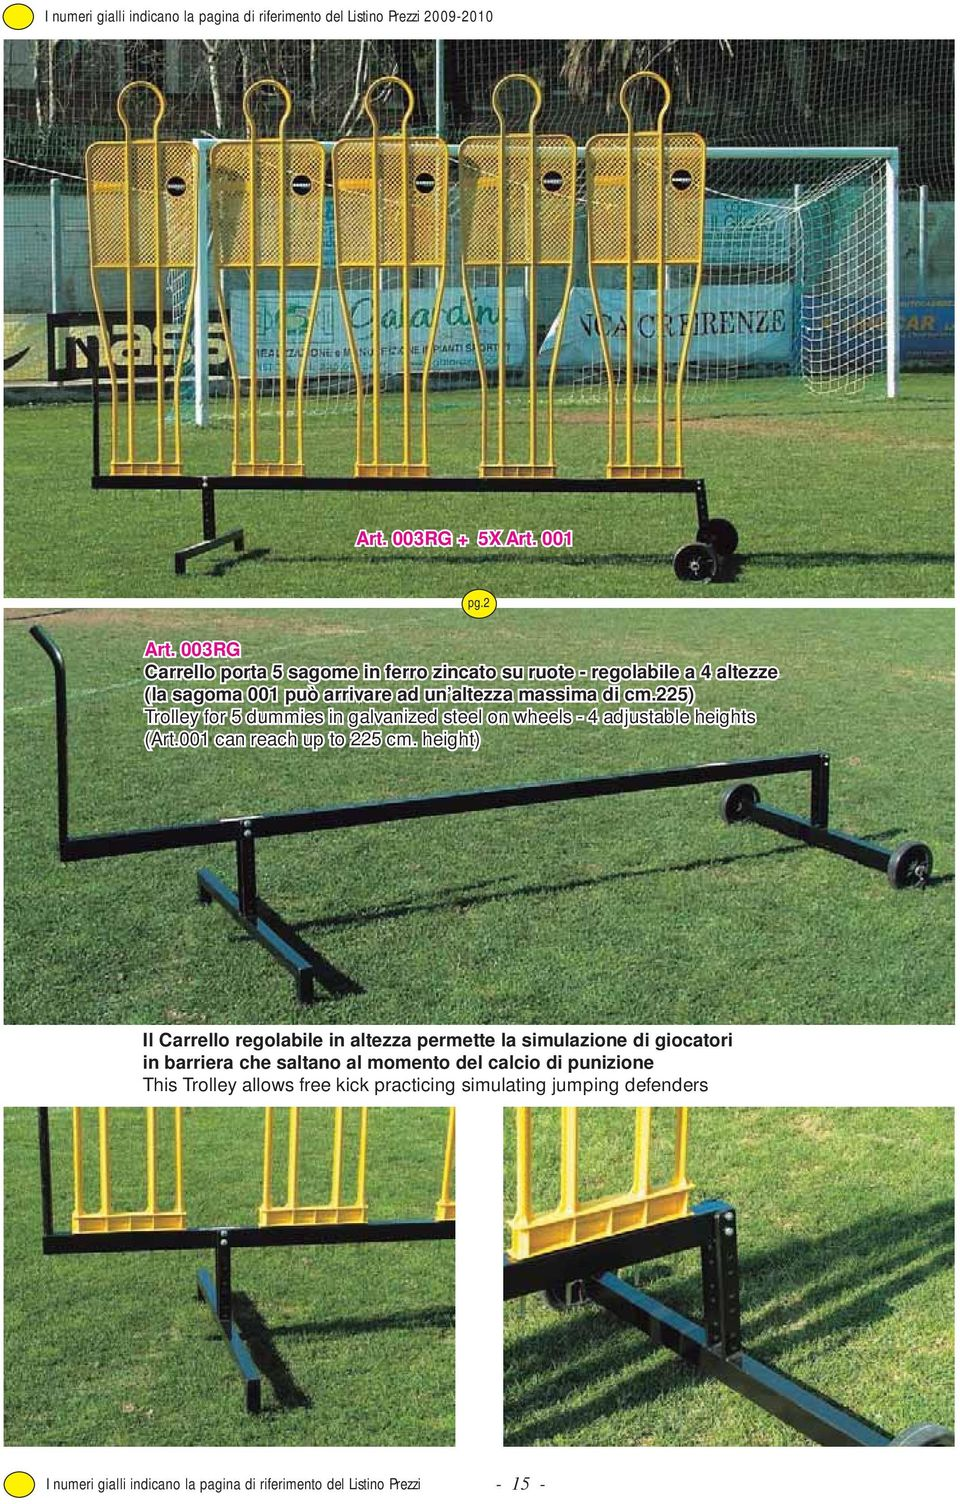 225) Trolley for 5 dummies in galvanized steel on wheels - 4 adjustable heights (Art.001 can reach up to 225 cm.